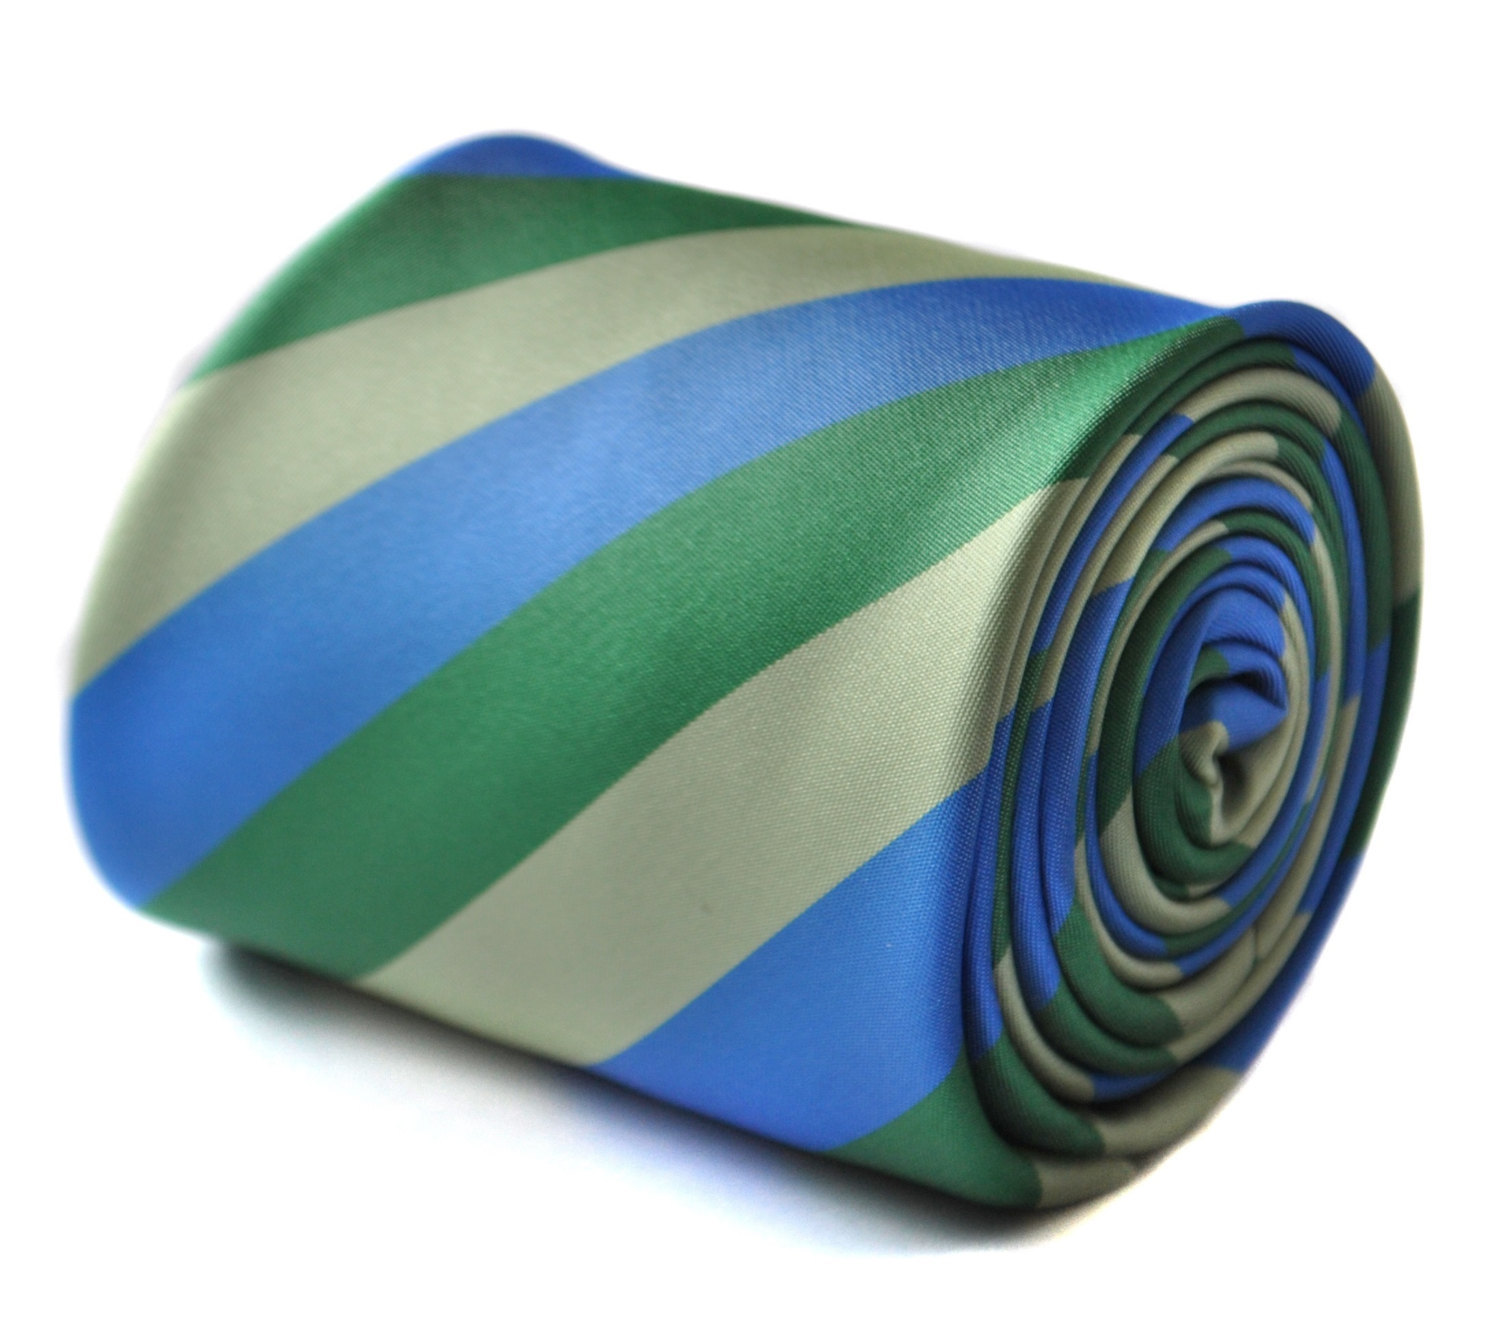 green and royal blue tie with signature floral design to the rear by Frederick T